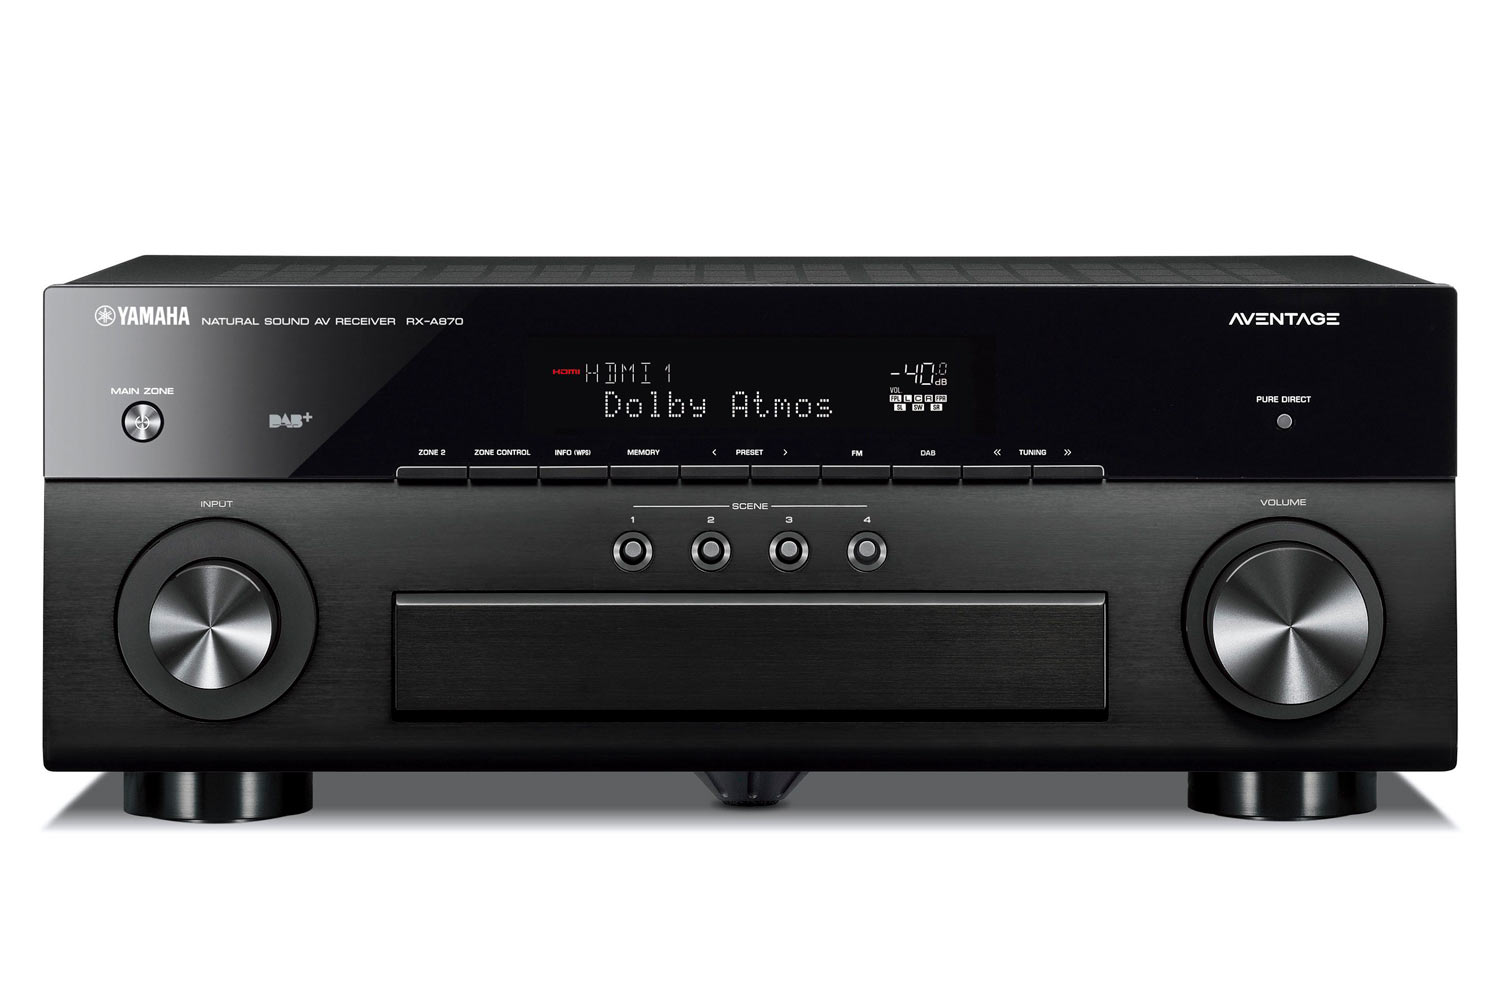 yamaha rx a870 surround receiver. Black Bedroom Furniture Sets. Home Design Ideas